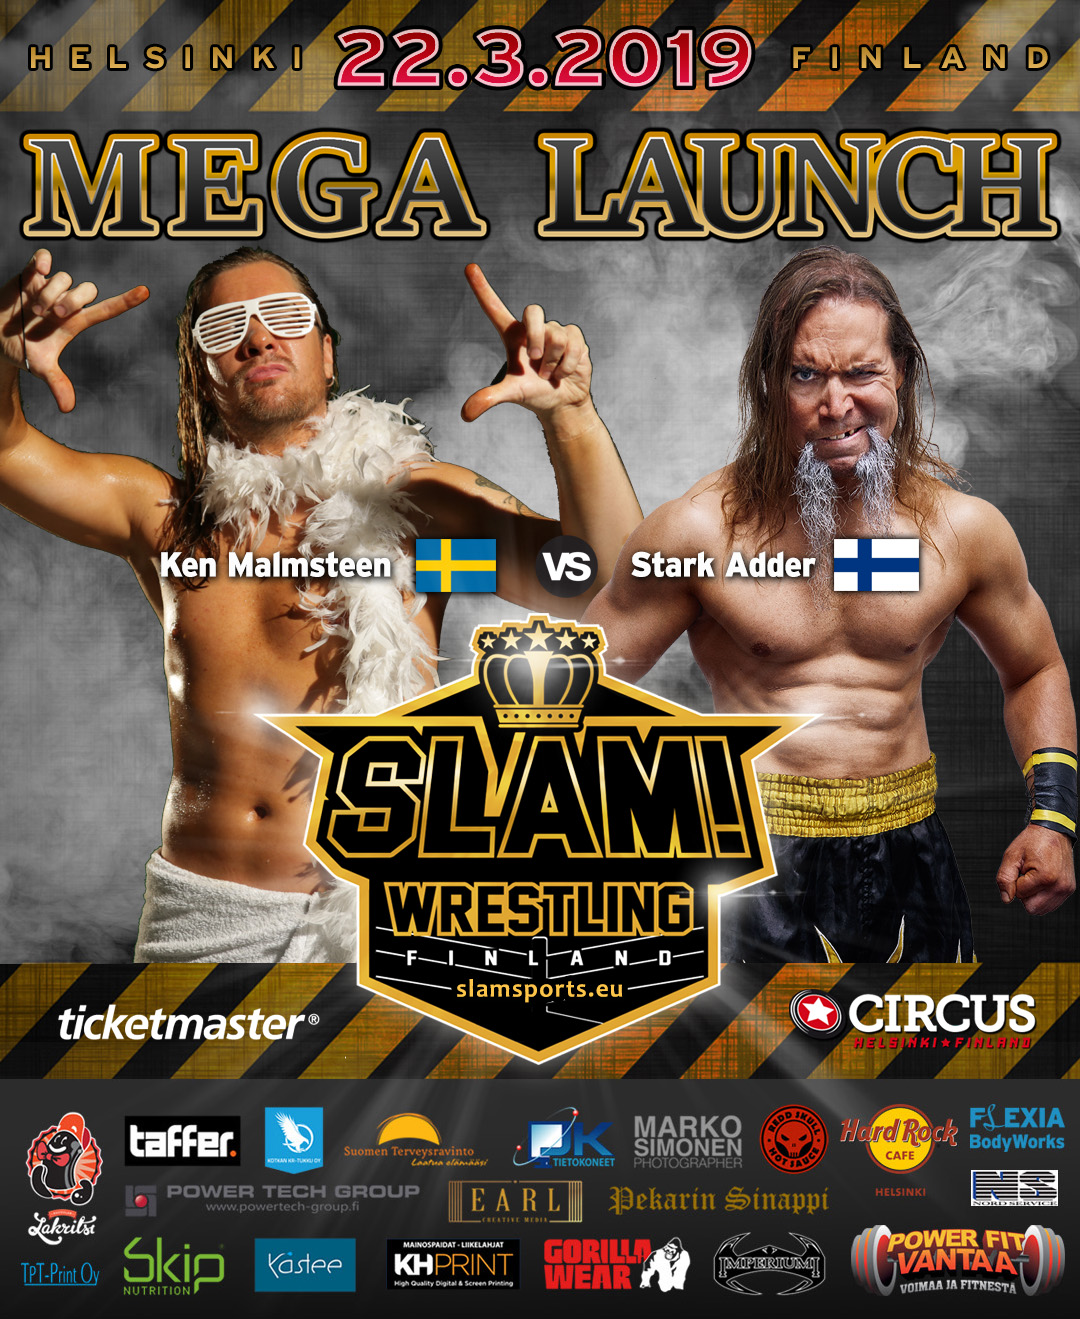 Match banner Malmsteen vs Adder MEGA LAUNCH